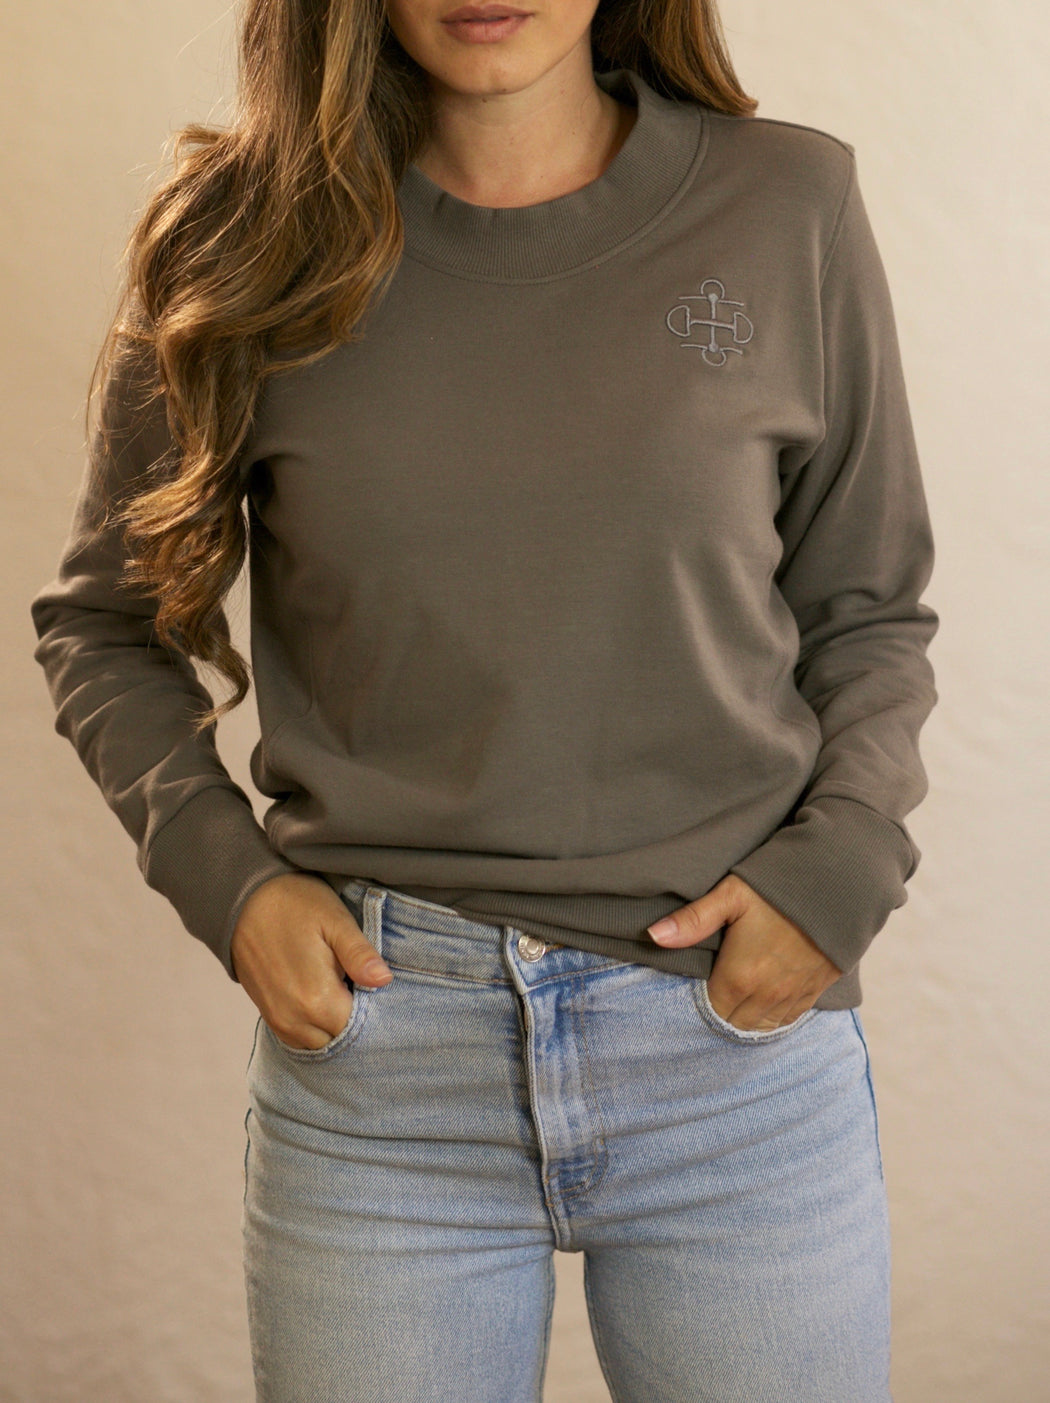 THE MATTE GRAY BAMBOO CREWNECK